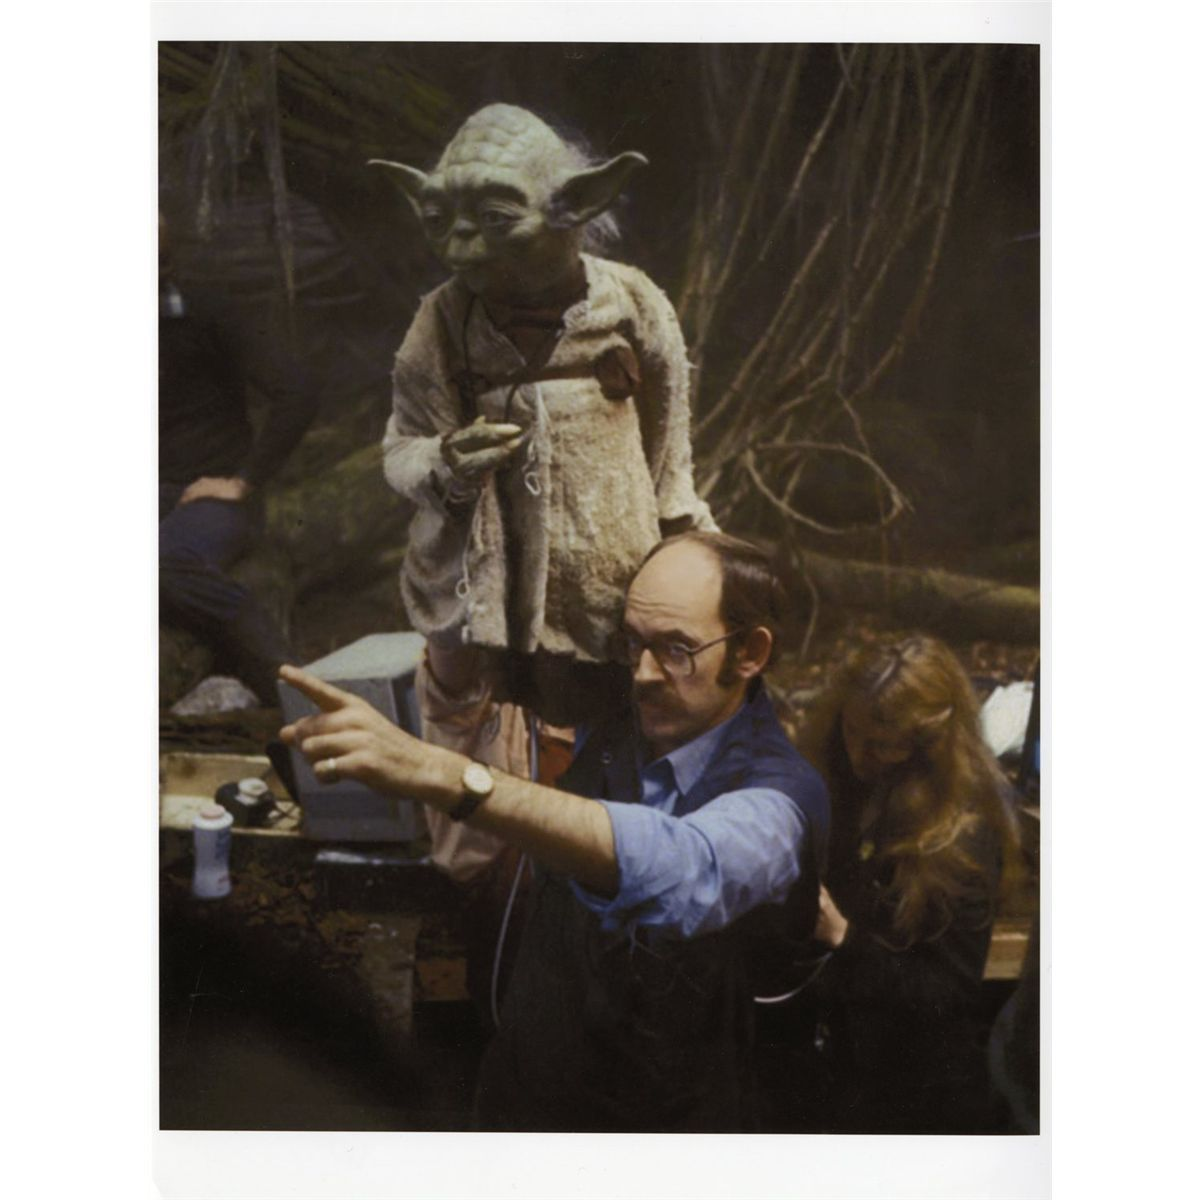 Yoda On Set Rehearsal Puppet From Star Wars Episode V The Empire Strikes Back In 2021 Star Wars Episodes Star Wars Episode Iv Star Wars Art